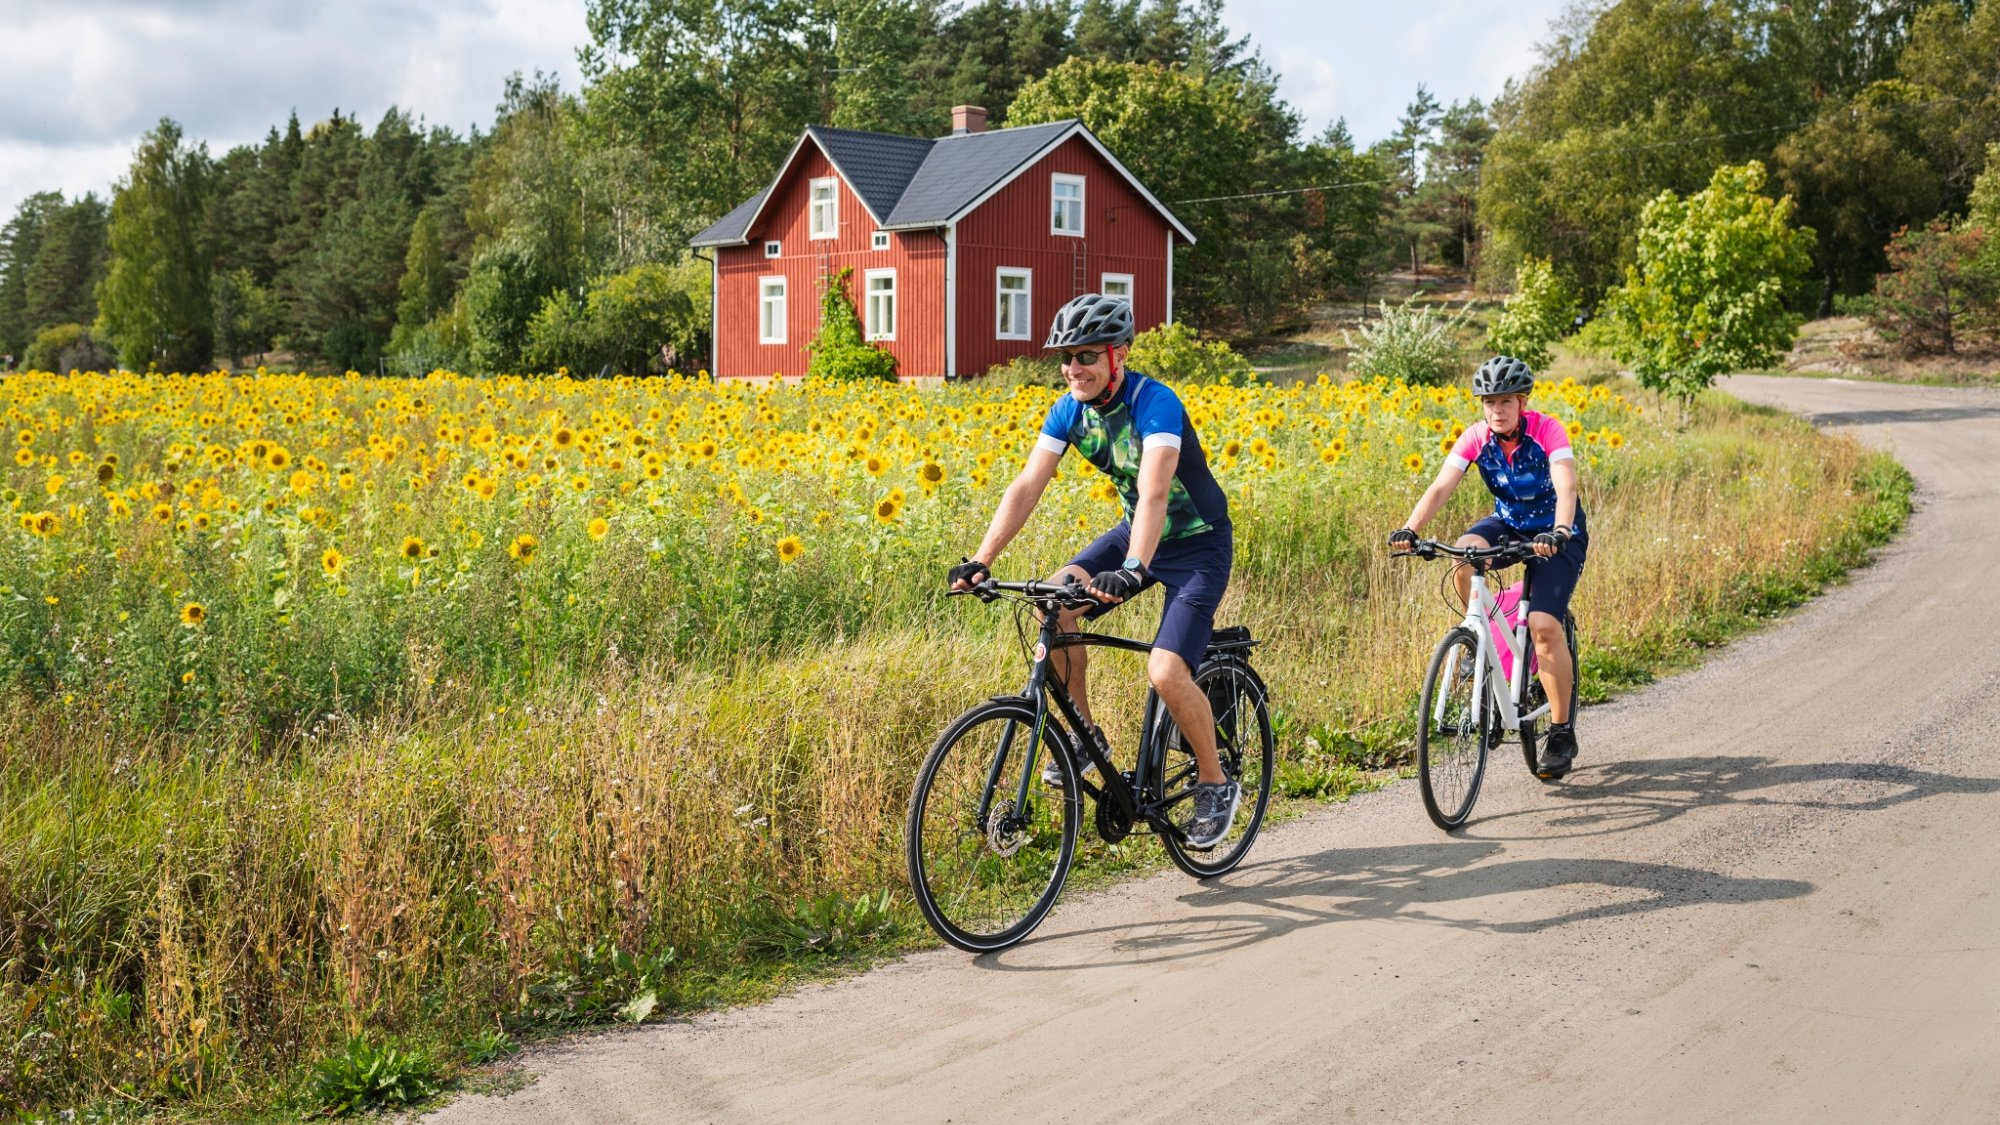 two bikers in a Finnish countryside